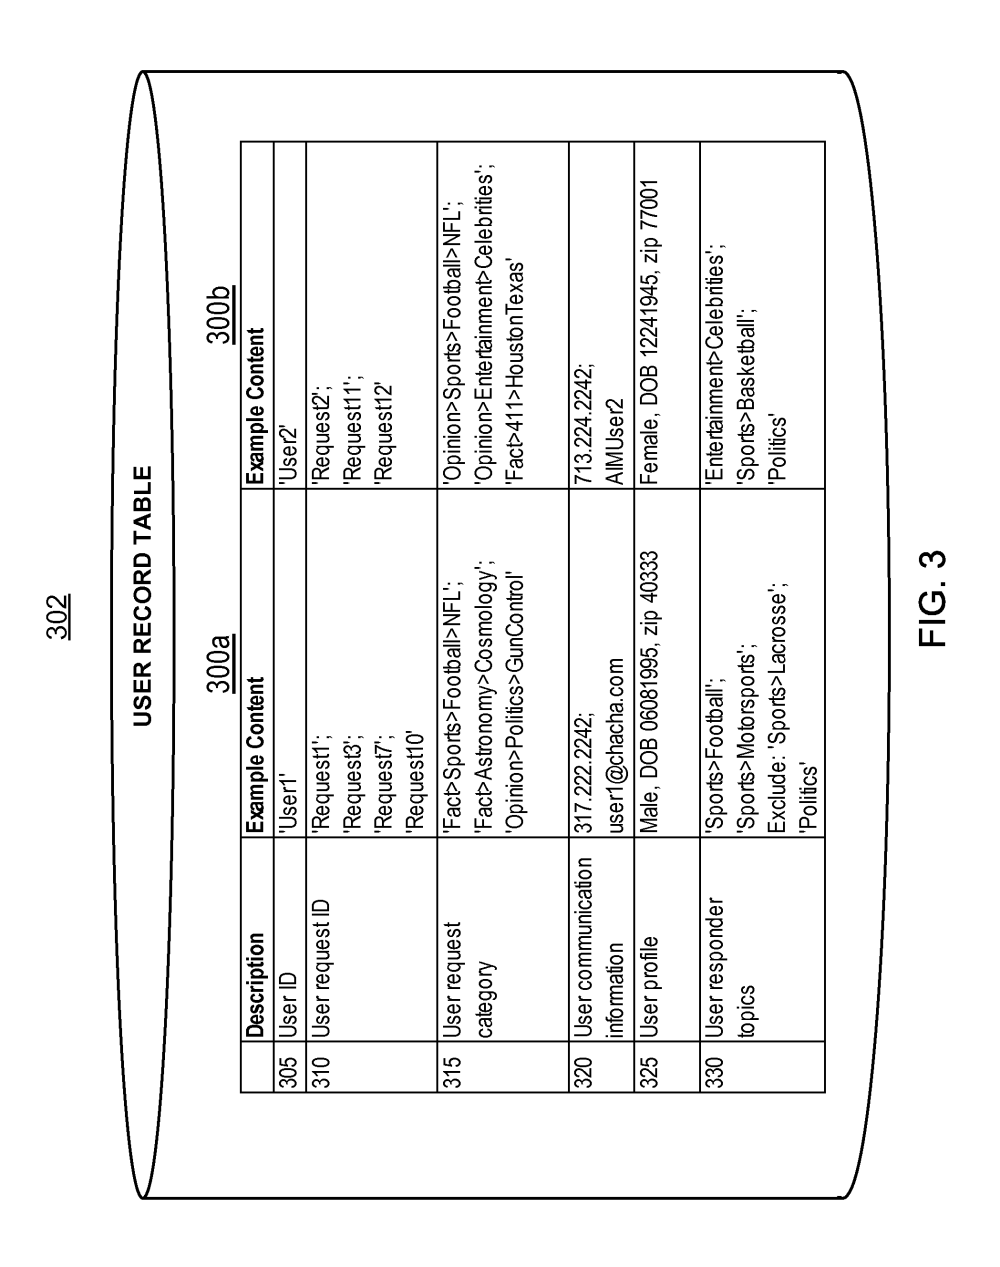 medium resolution of us20140310614a1 method and system of increasing user interaction google patents